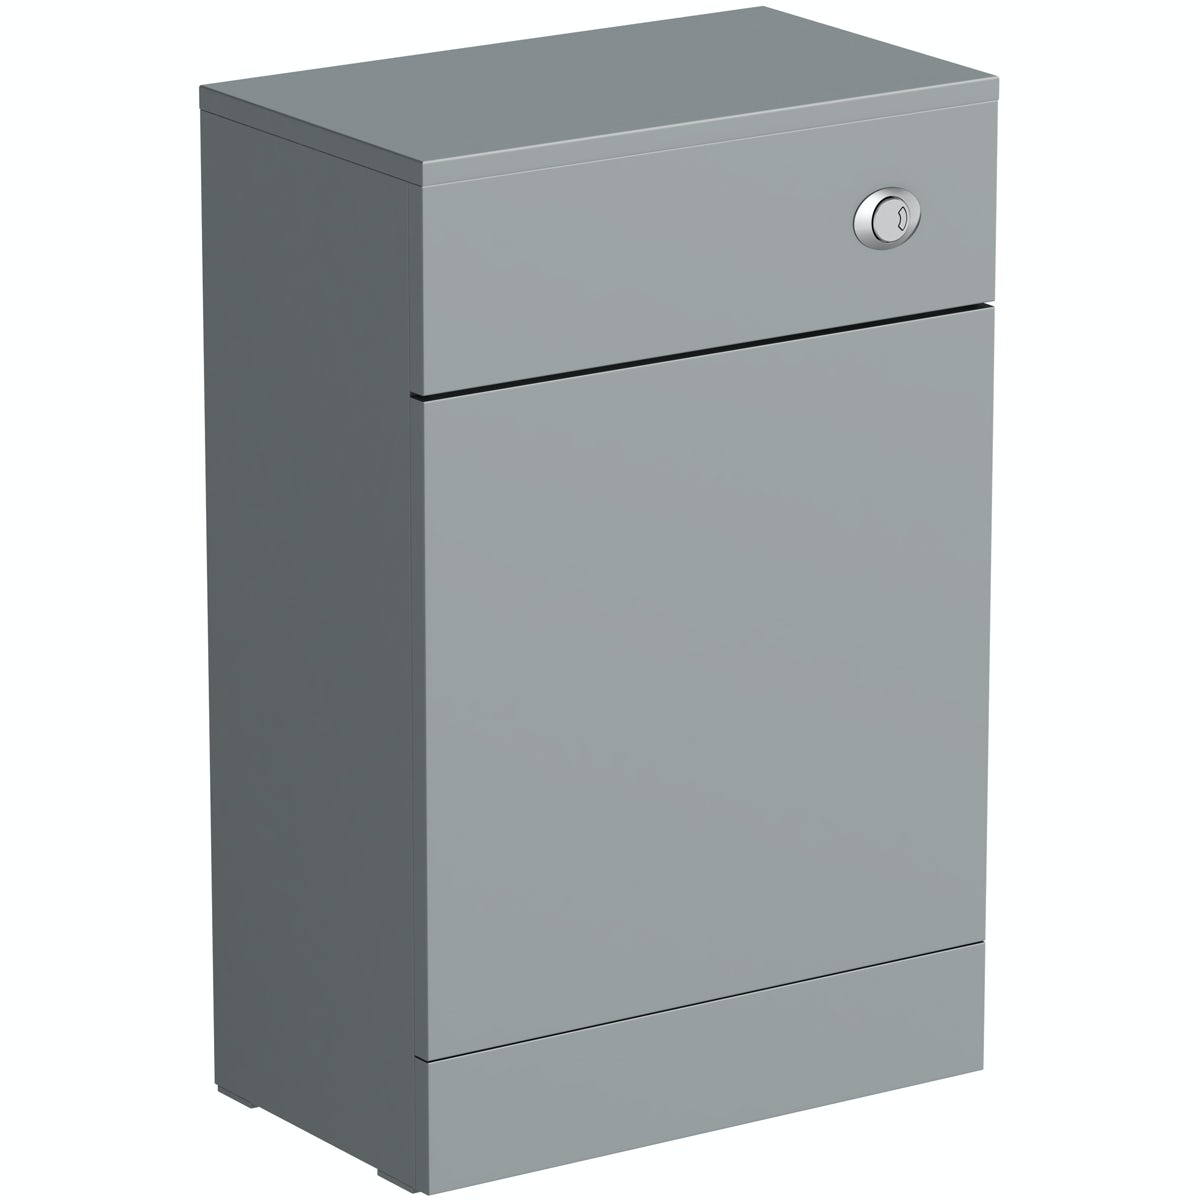 Orchard Elsdon stone grey slimline back to wall toilet unit 500mm